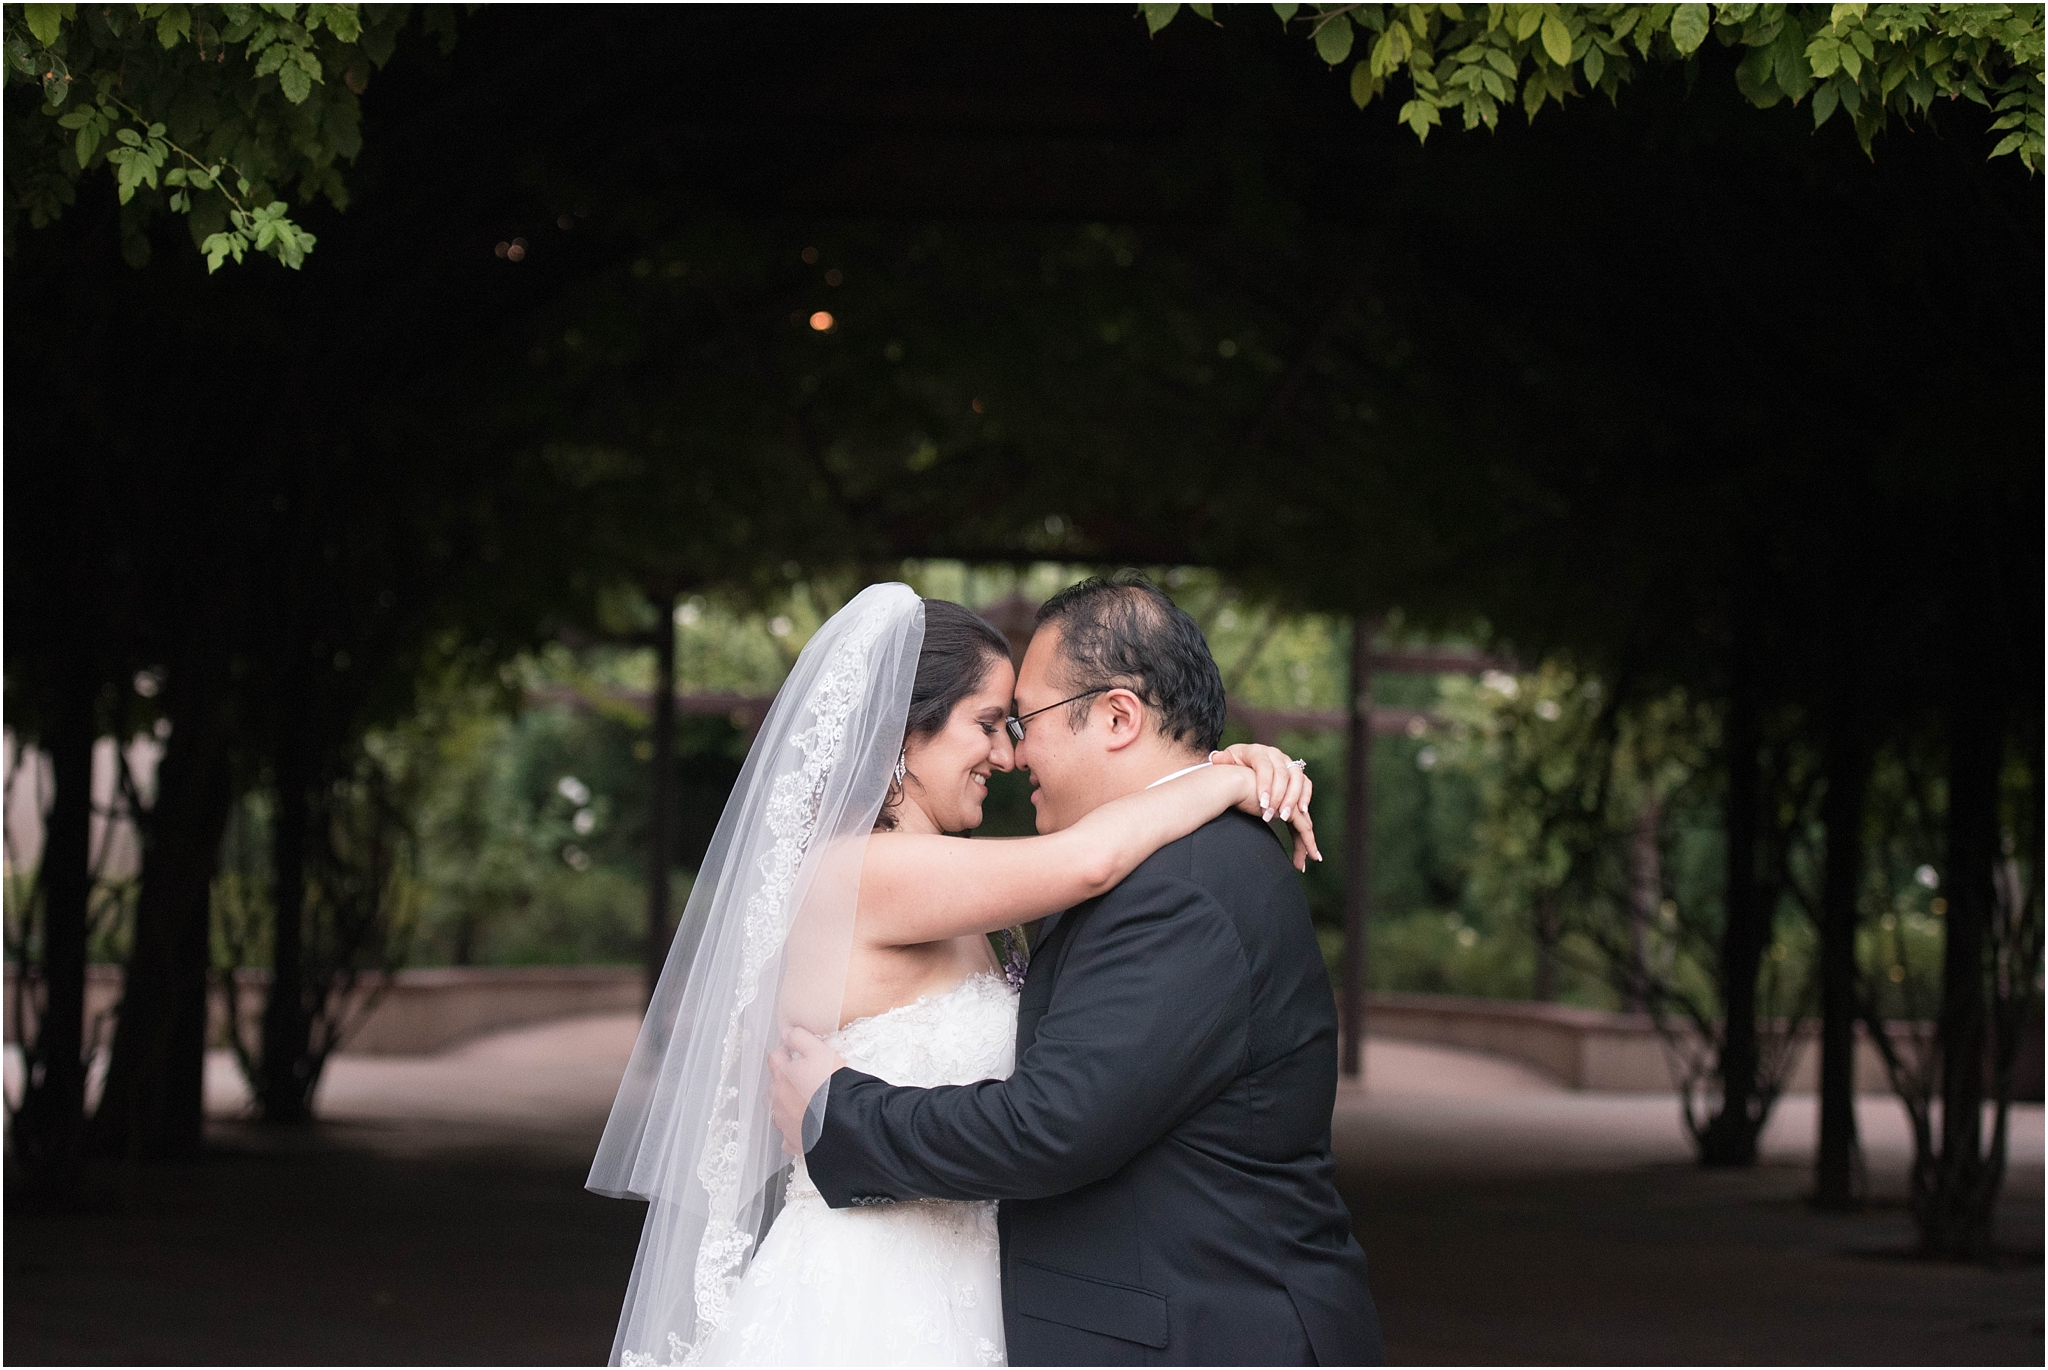 kayla kitts photography - new mexico wedding photographer - albuquerque botanic gardens - hotel albuquerque_0026.jpg